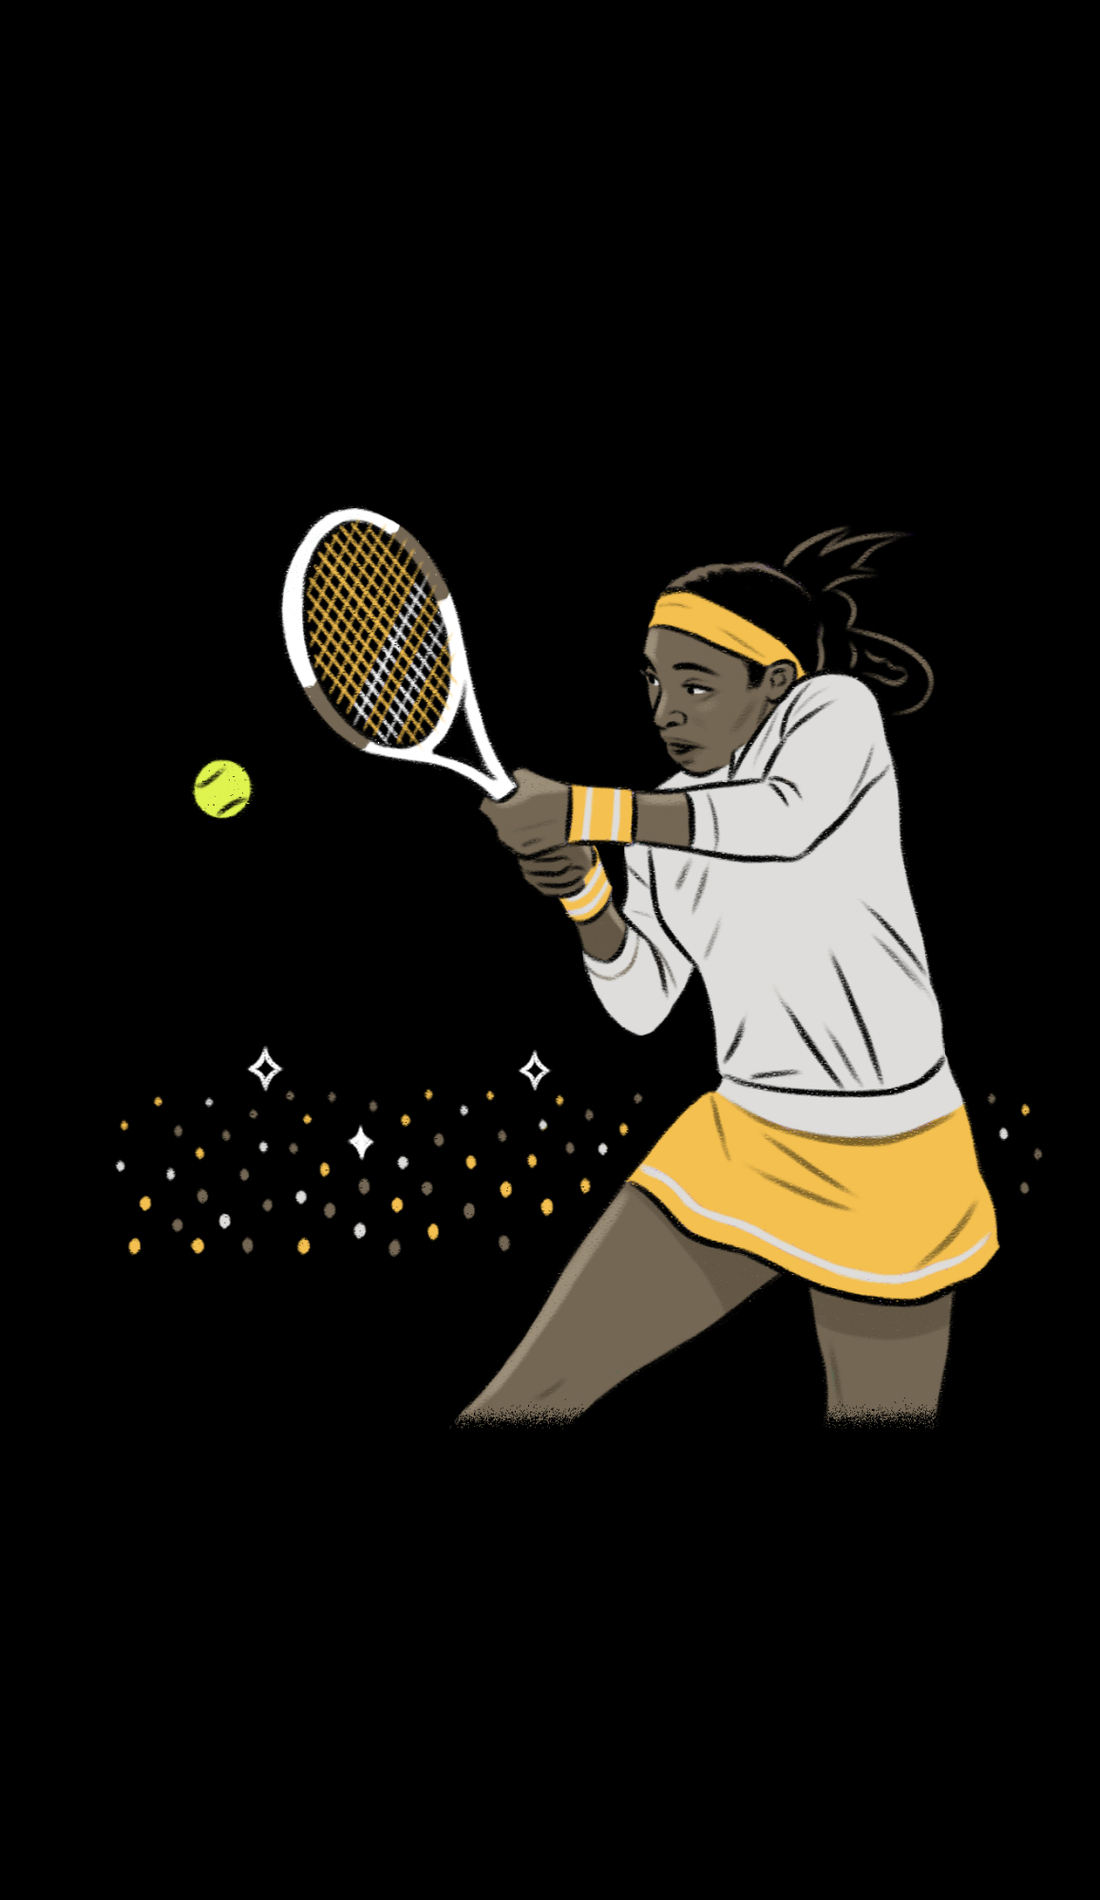 A Rogers Cup live event